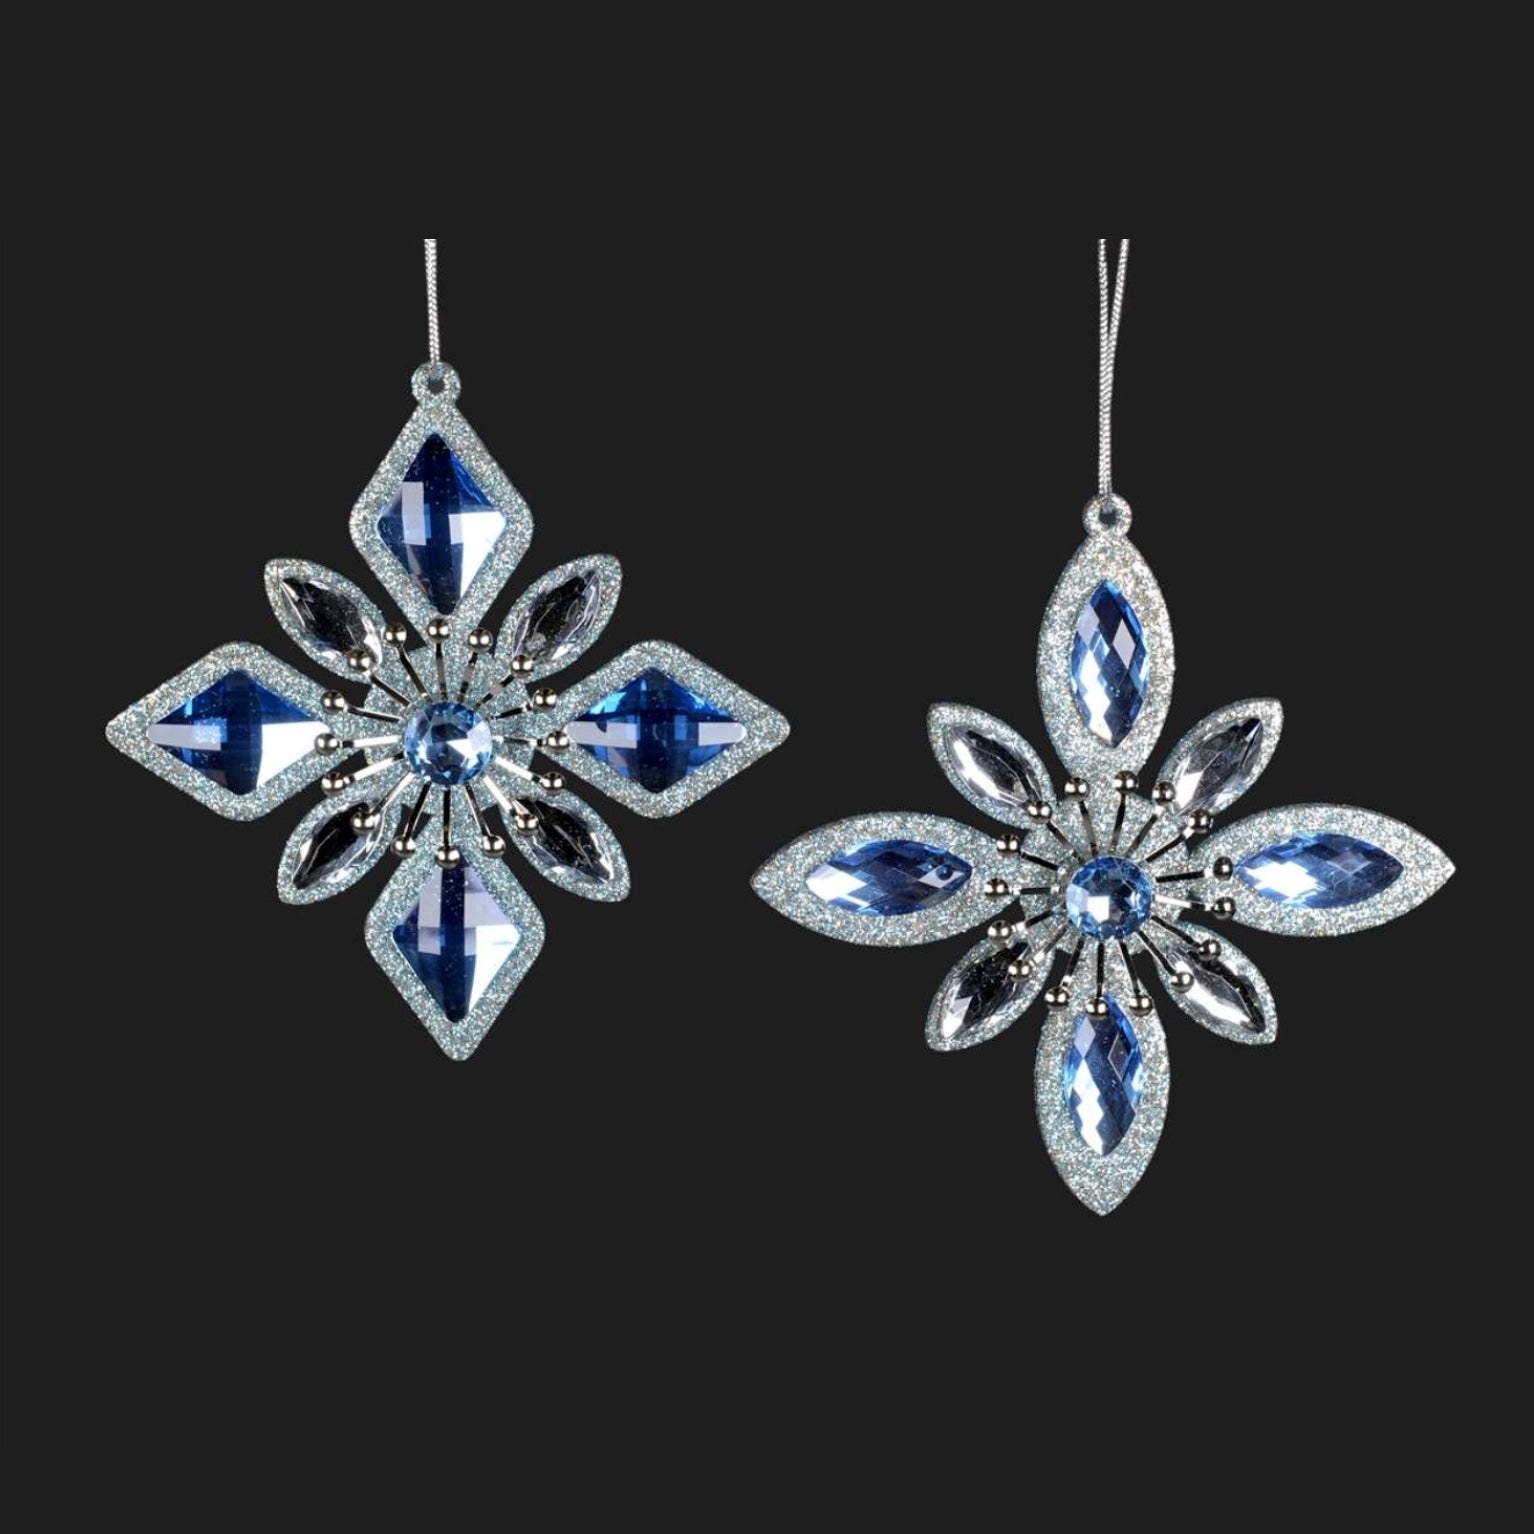 Blue and Silver Jewel Snowflake Ornament